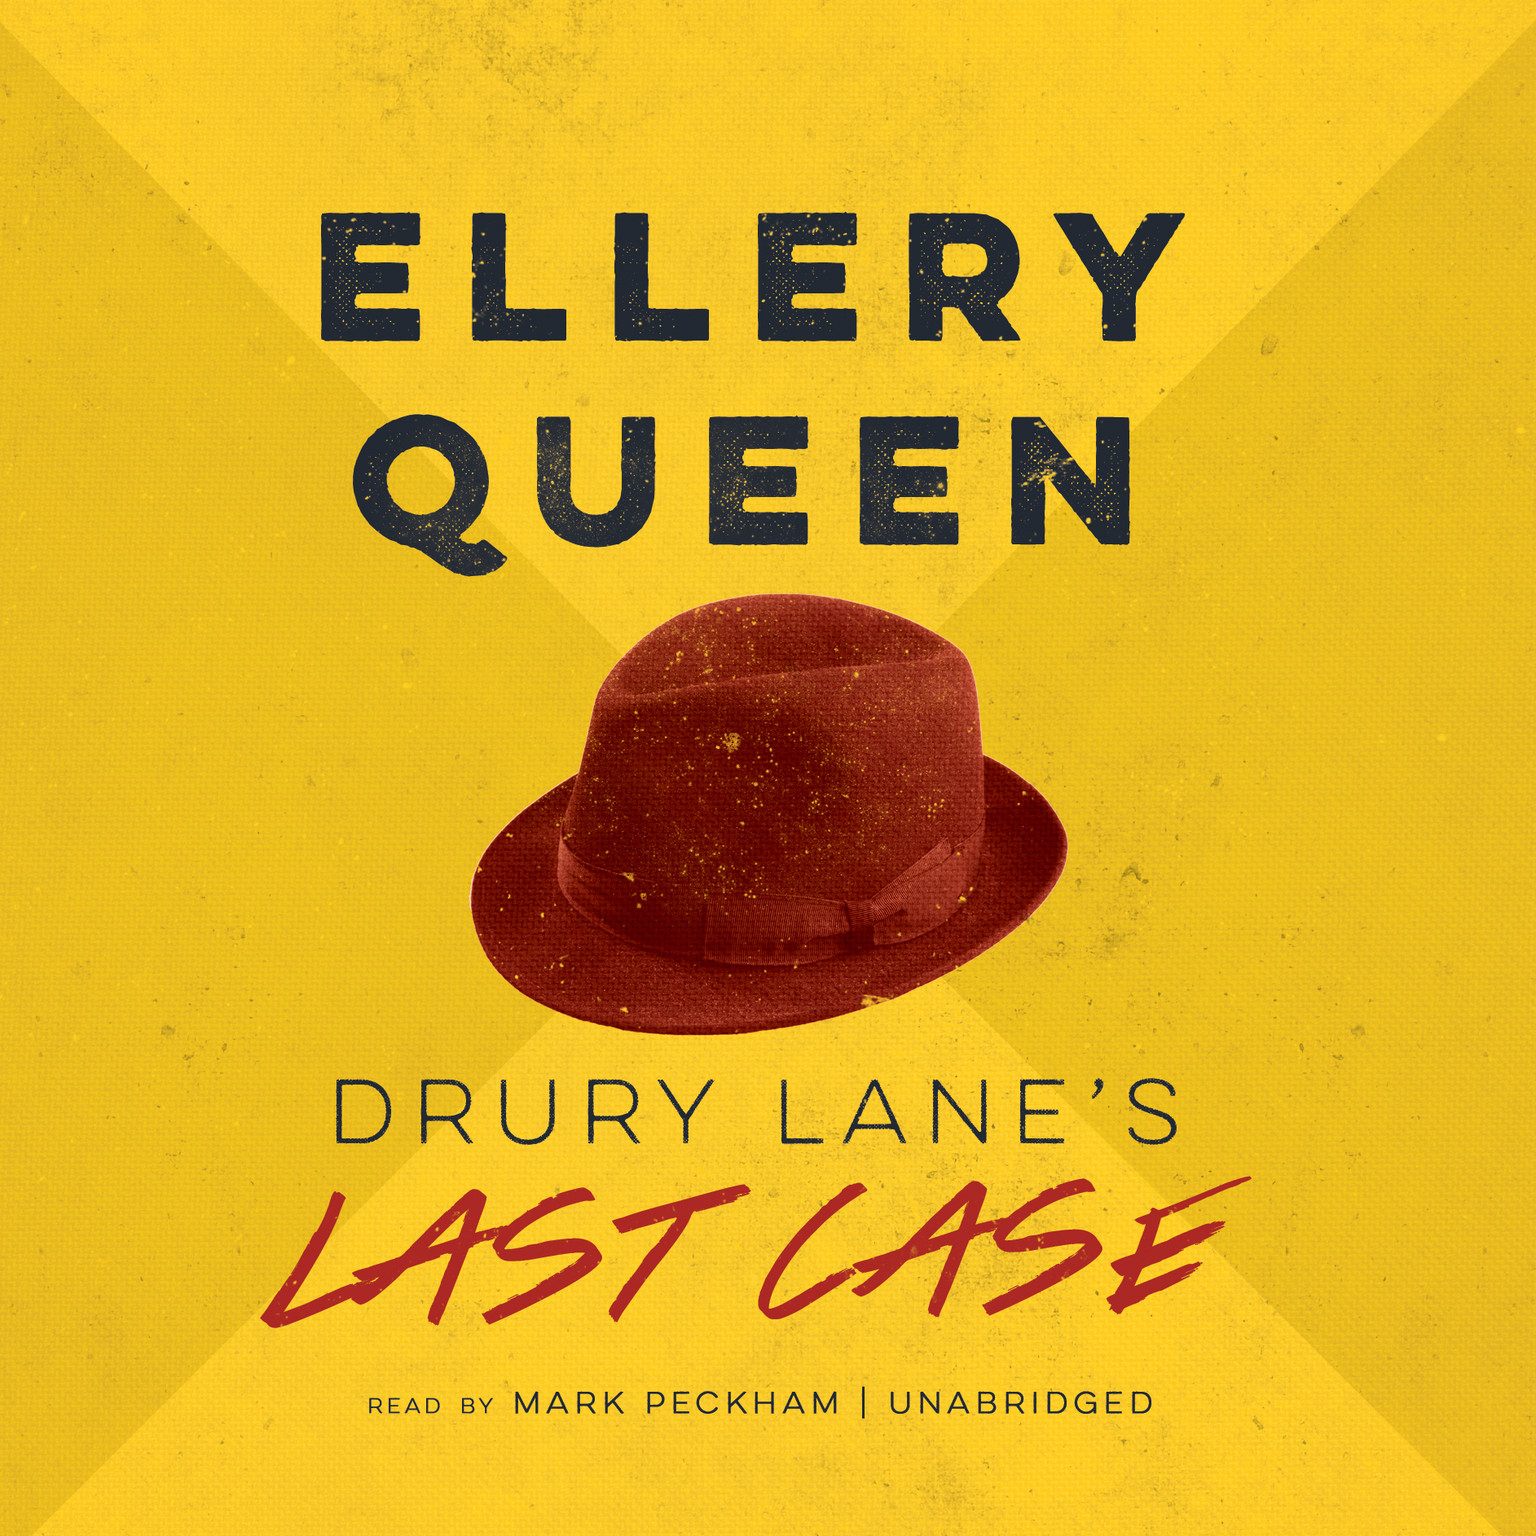 Printable Drury Lane's Last Case Audiobook Cover Art